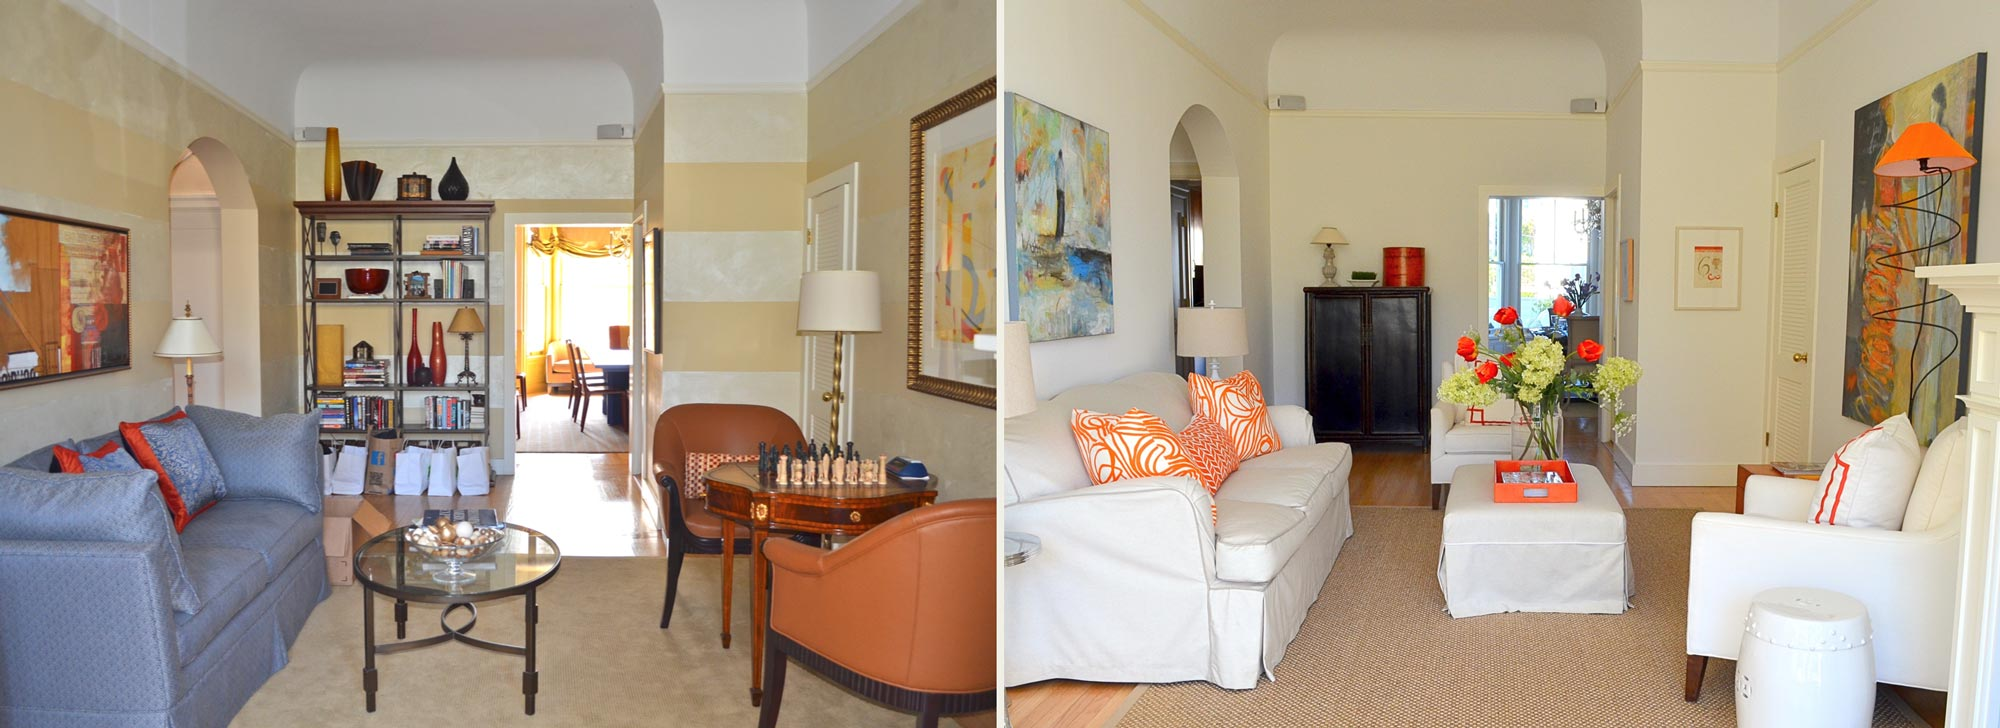 cary-nowell-staging-before-after-13.jpg